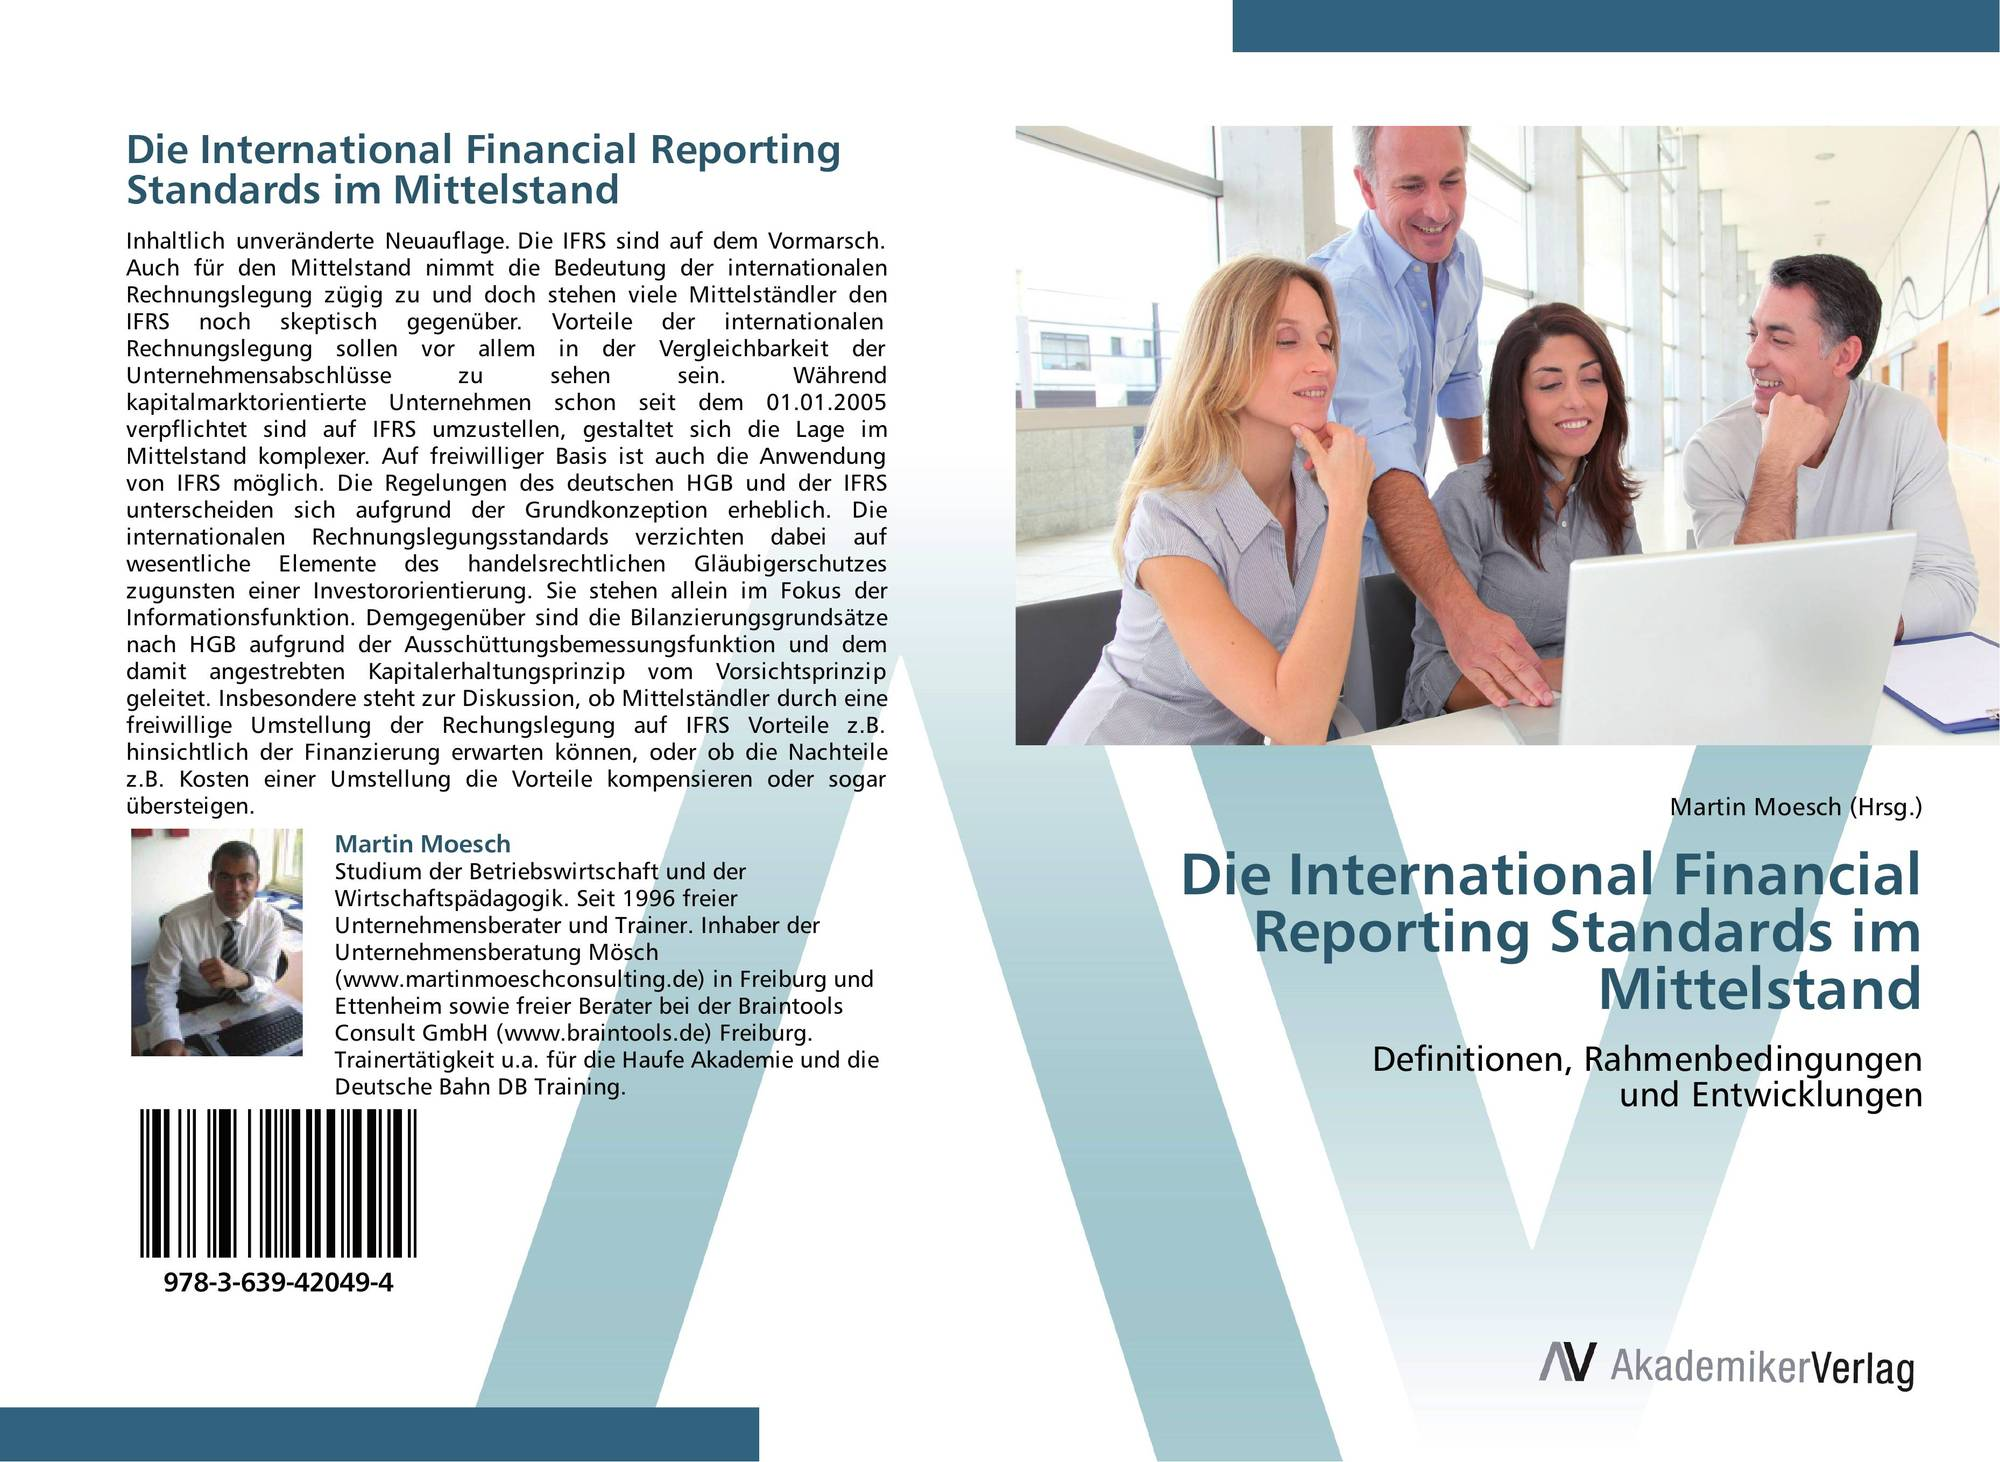 international financial reporting standard International financial reporting standards this page contains links to our summaries, analysis, history and resources for international financial reporting standards (ifrs) issued by the international accounting standards board (iasb.